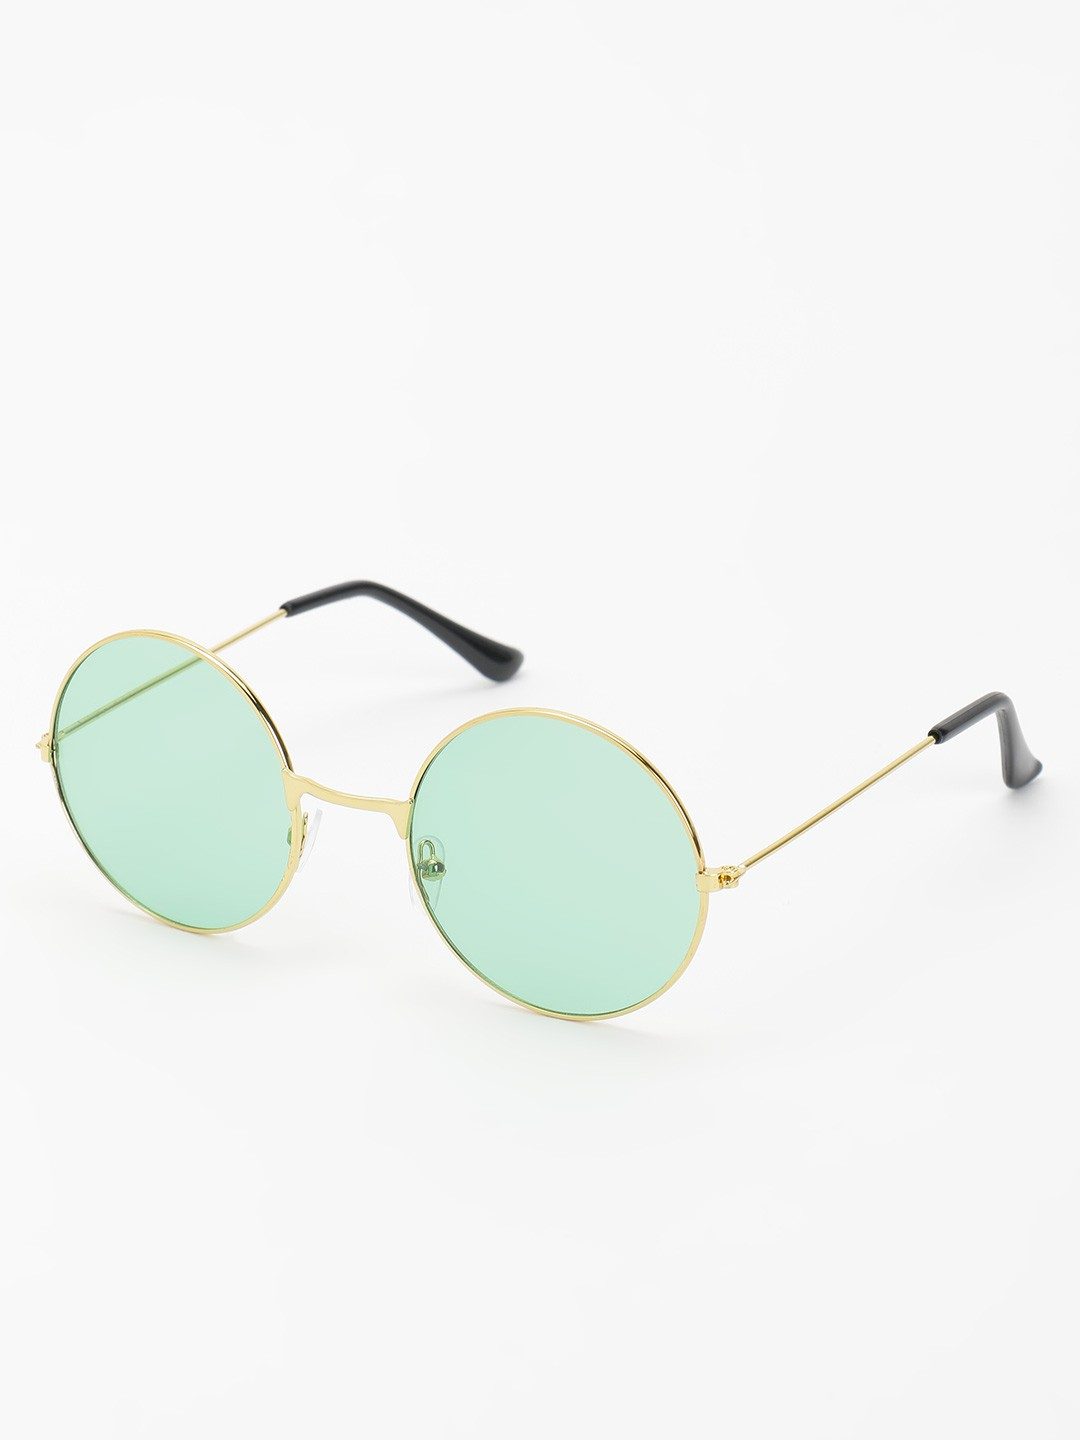 KOOVS Green Coloured Lens Round Sunglasses 1